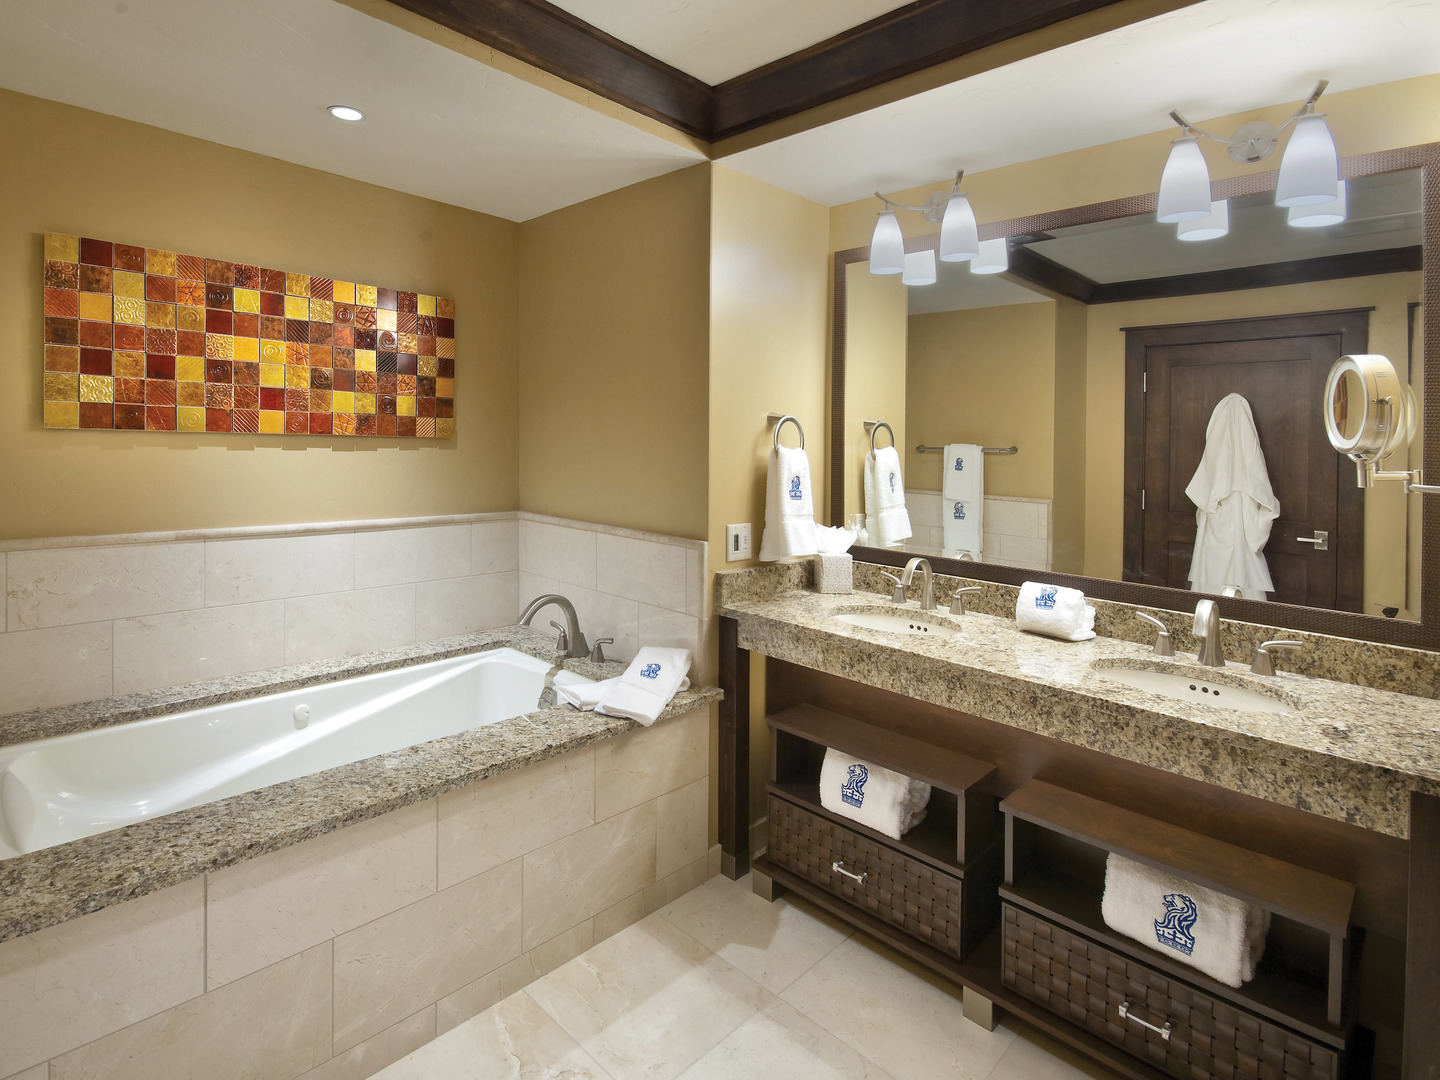 The Ritz-Carlton Club<span class='trademark'>®</span>, Lake Tahoe Residence Master Bathroom. The Ritz-Carlton Club<span class='trademark'>®</span>, Lake Tahoe is located in Truckee, California United States.